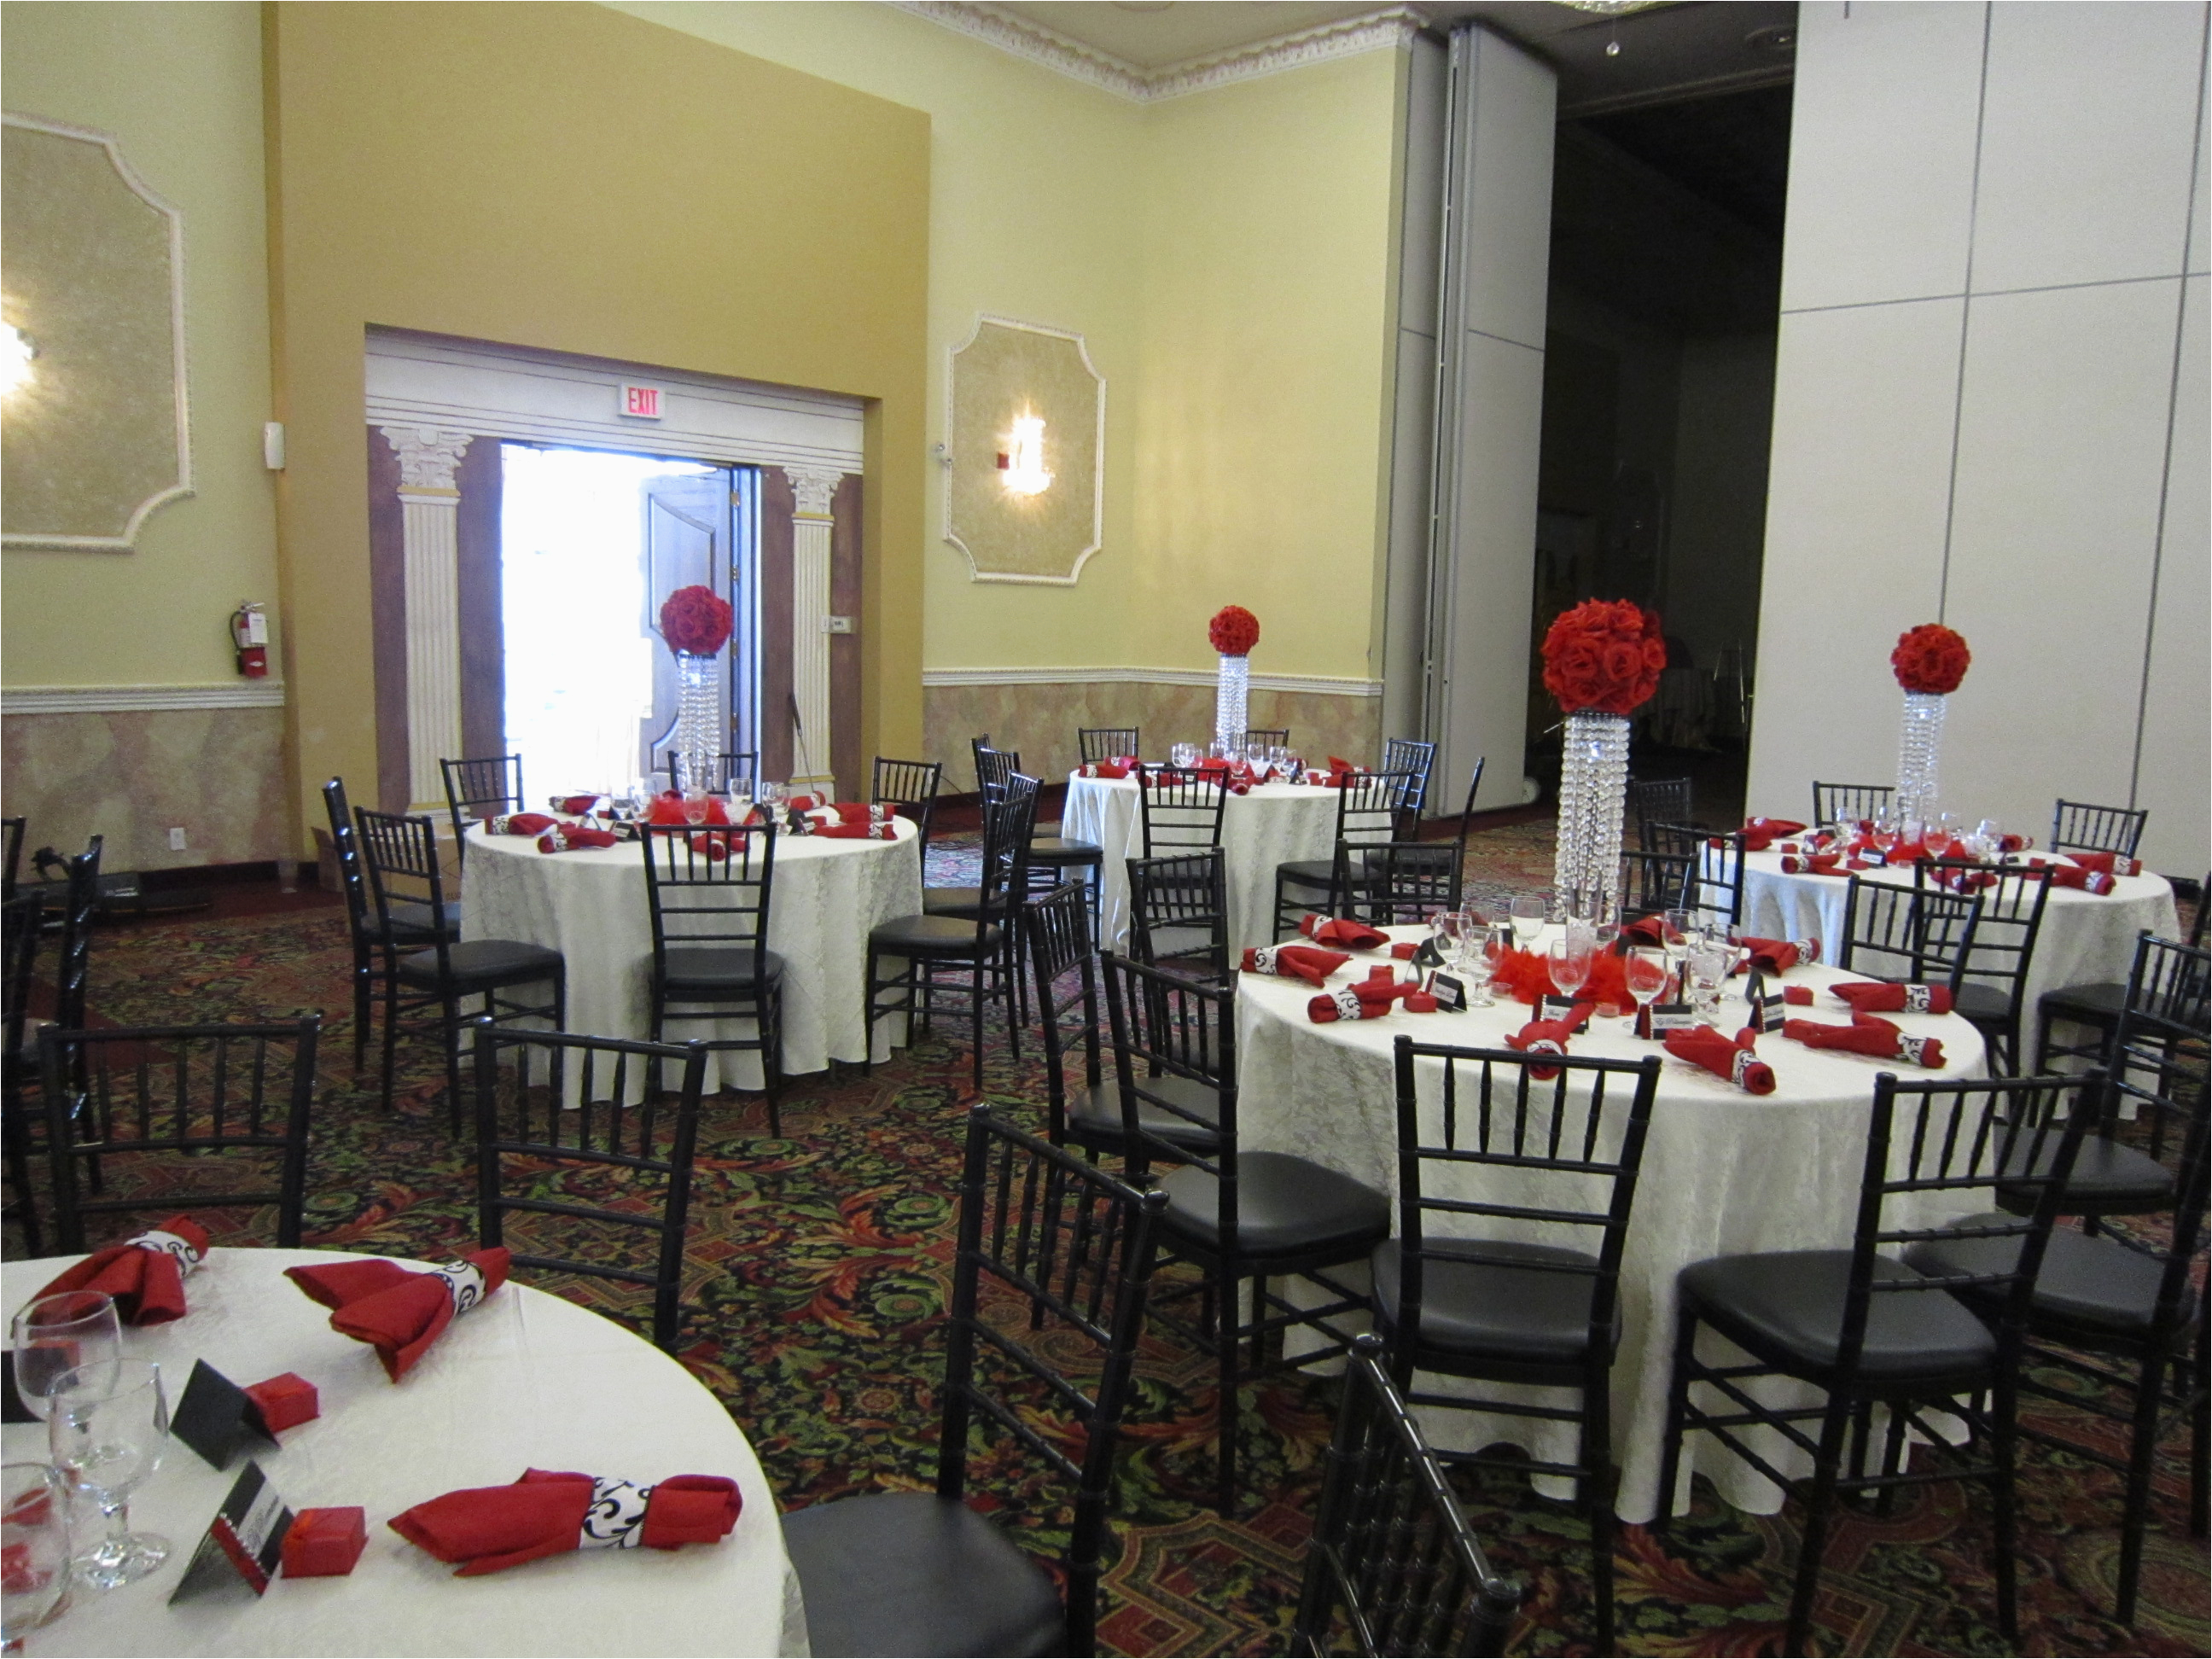 18th Birthday Table Decoration Ideas Party With Red Rose Ball Crystal